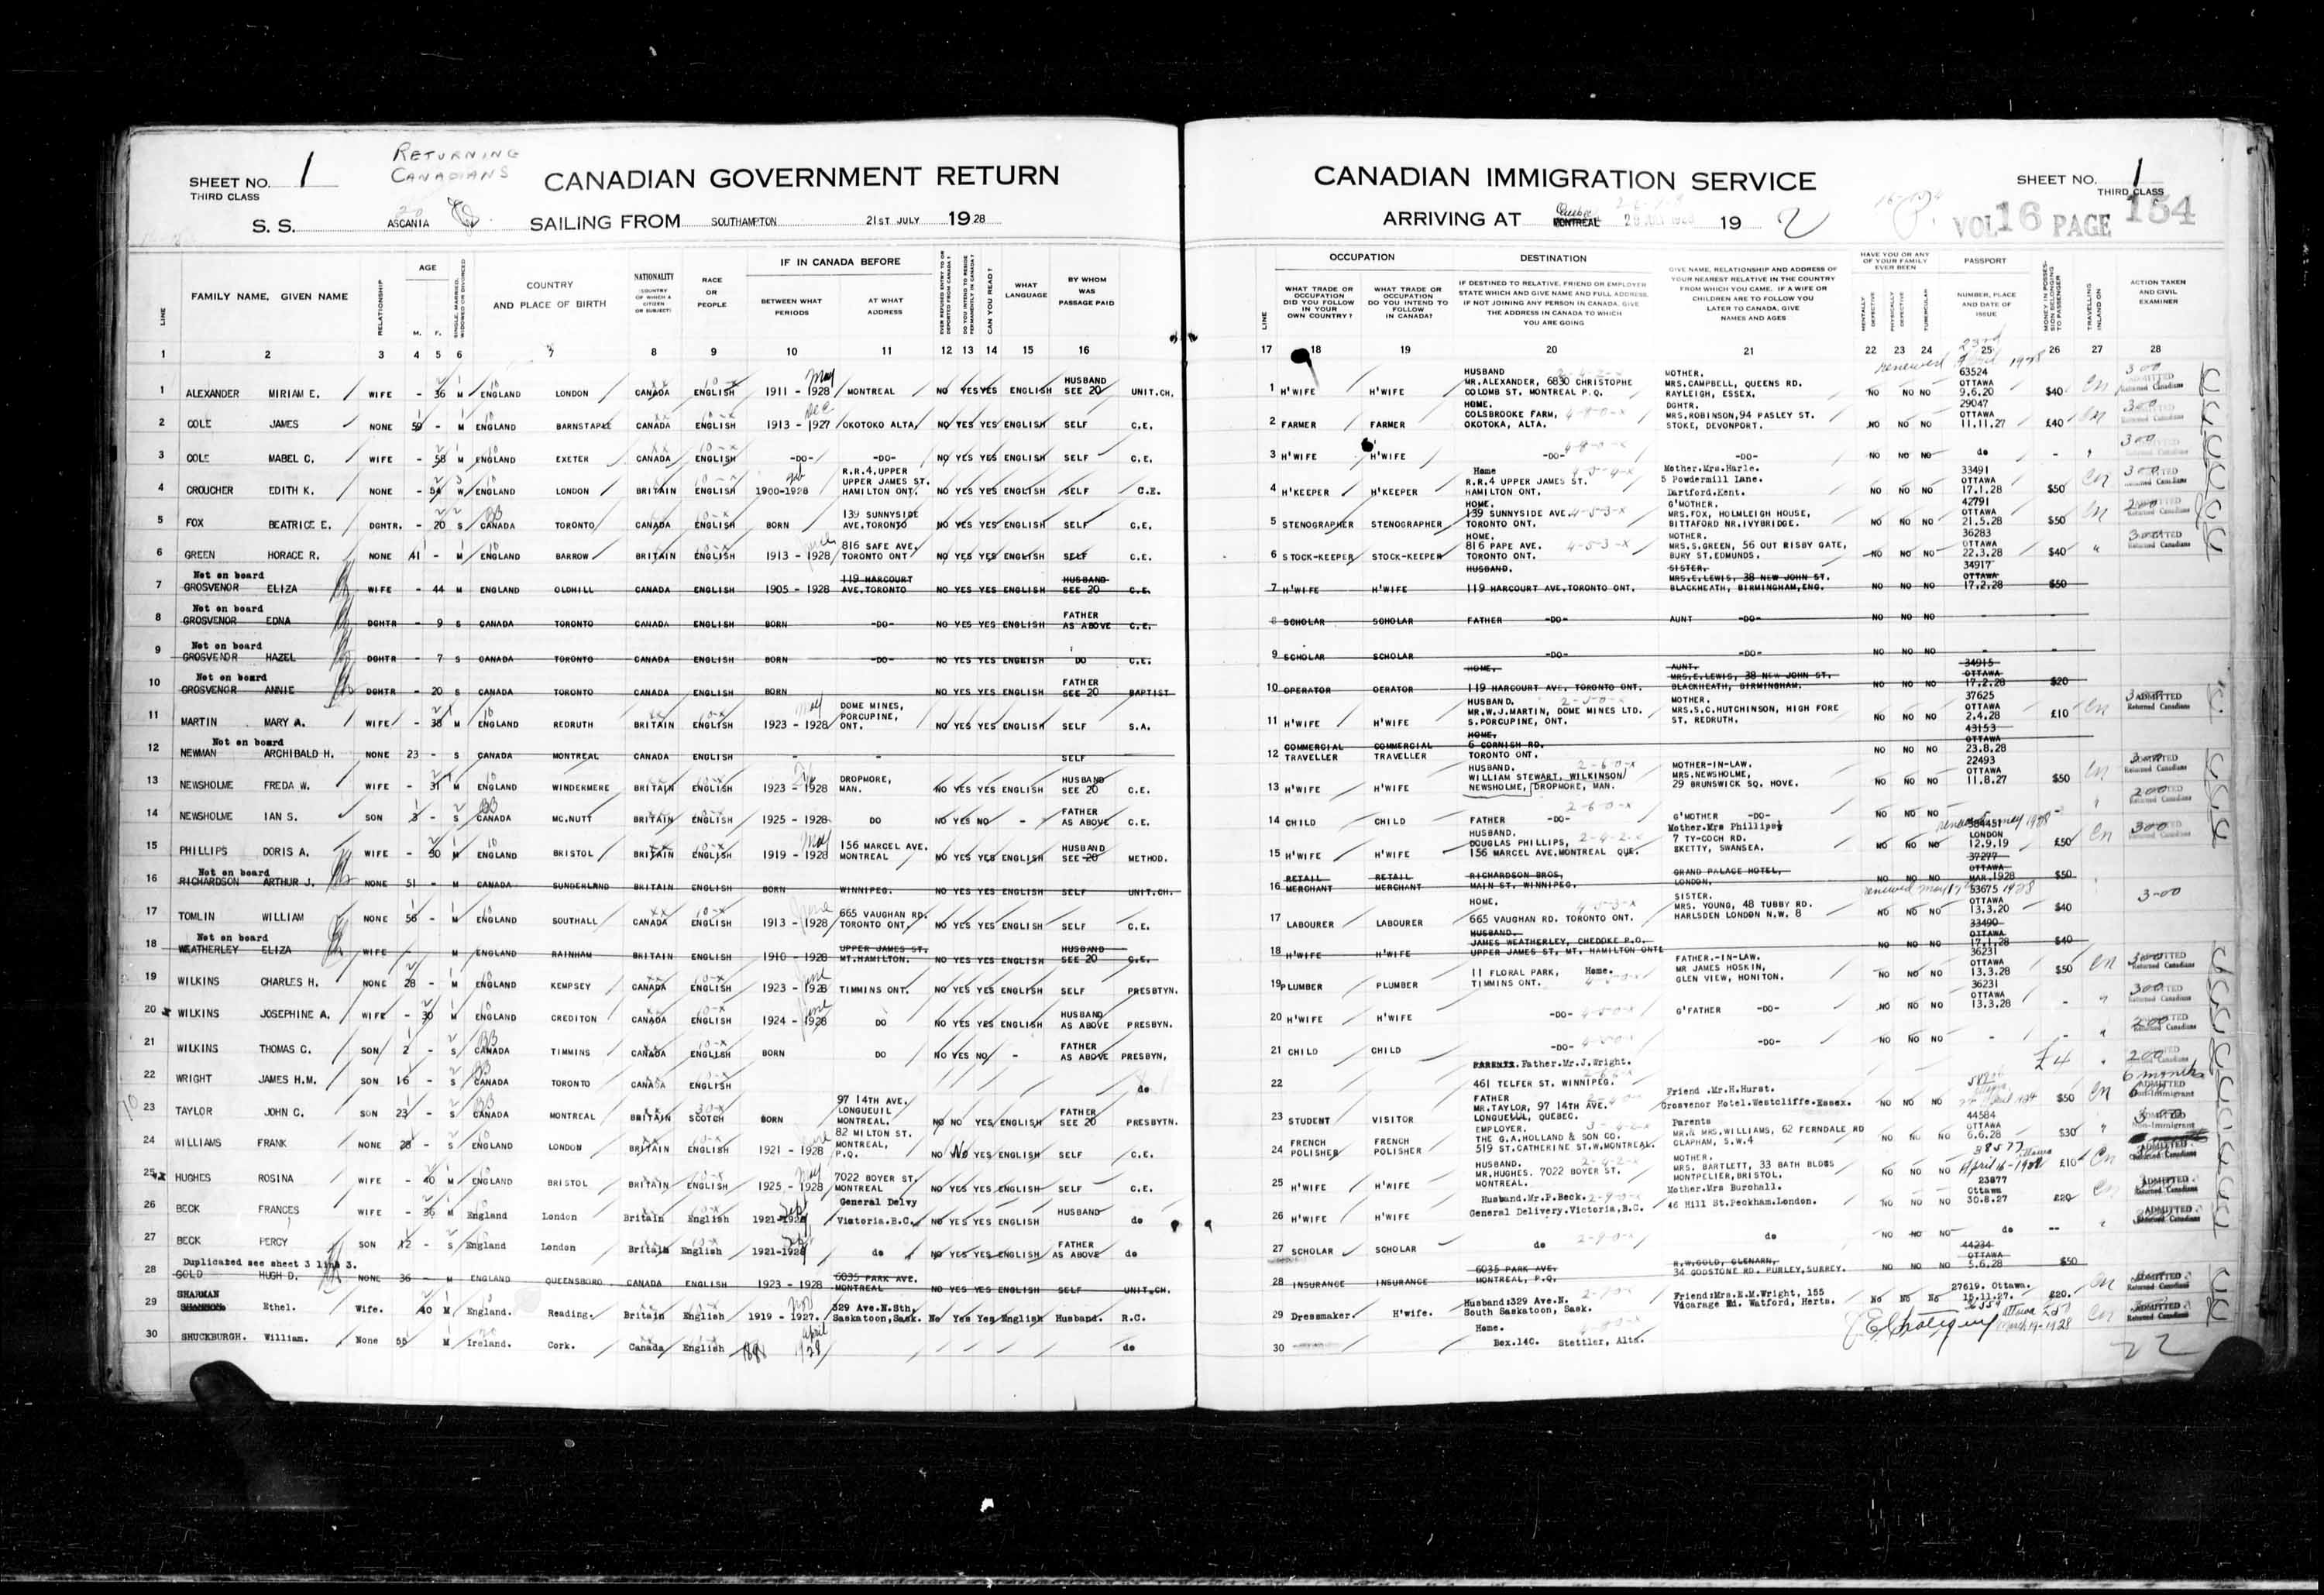 Title: Passenger Lists: Quebec City (1925-1935) - Mikan Number: 134839 - Microform: t-14746